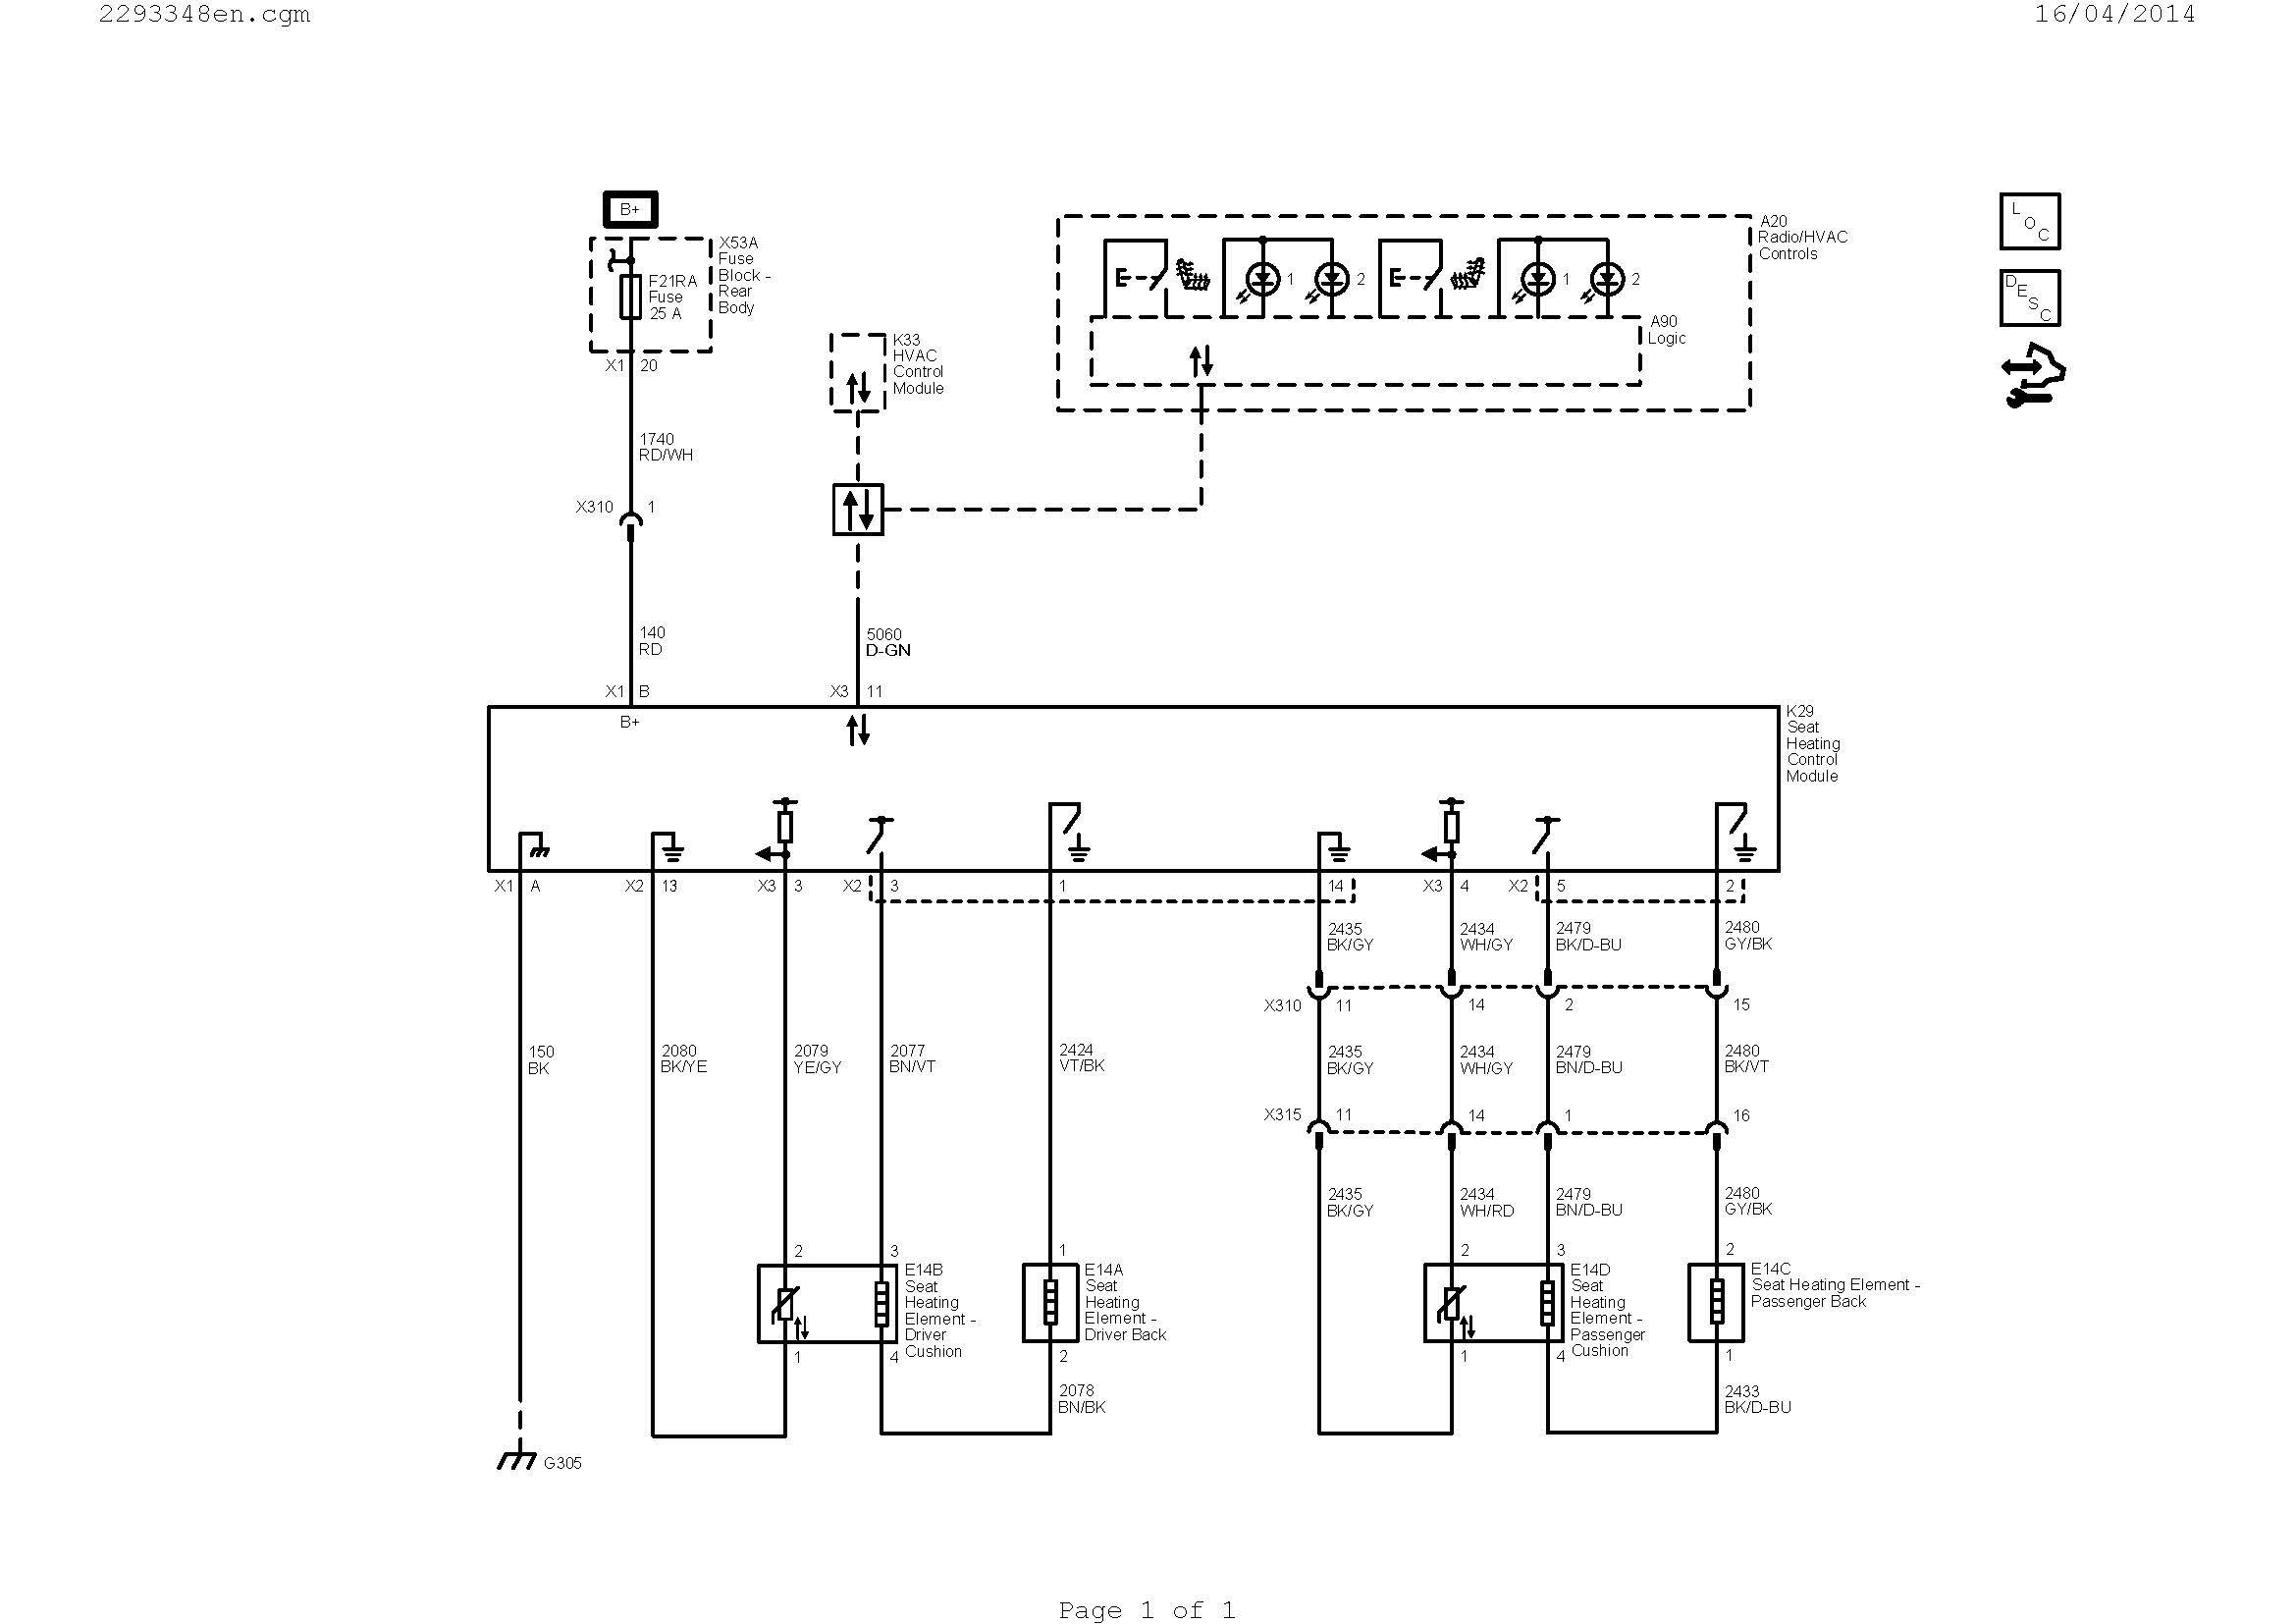 carrier air conditioner wiring diagram wiring a ac thermostat diagram new wiring diagram ac valid hvac diagram best hvac diagram 0d wire 6p carrier air conditioner wiring diagram gallery wiring diagram sample